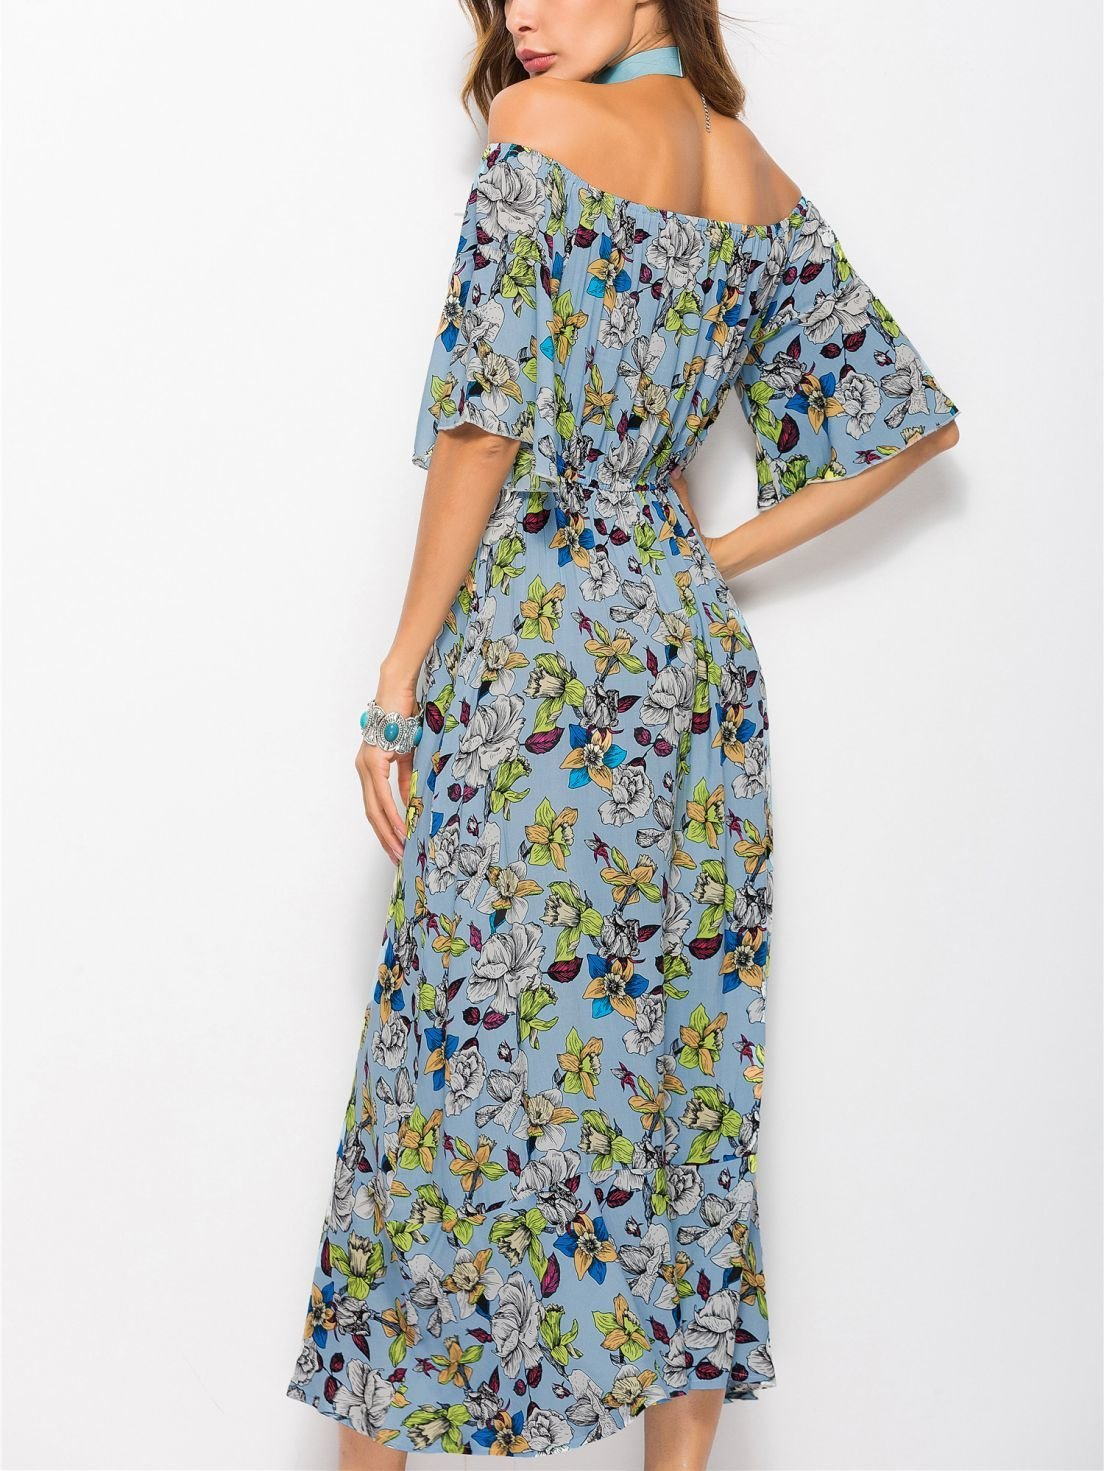 Boho Casual Dress with Elbow-Length Sleeves